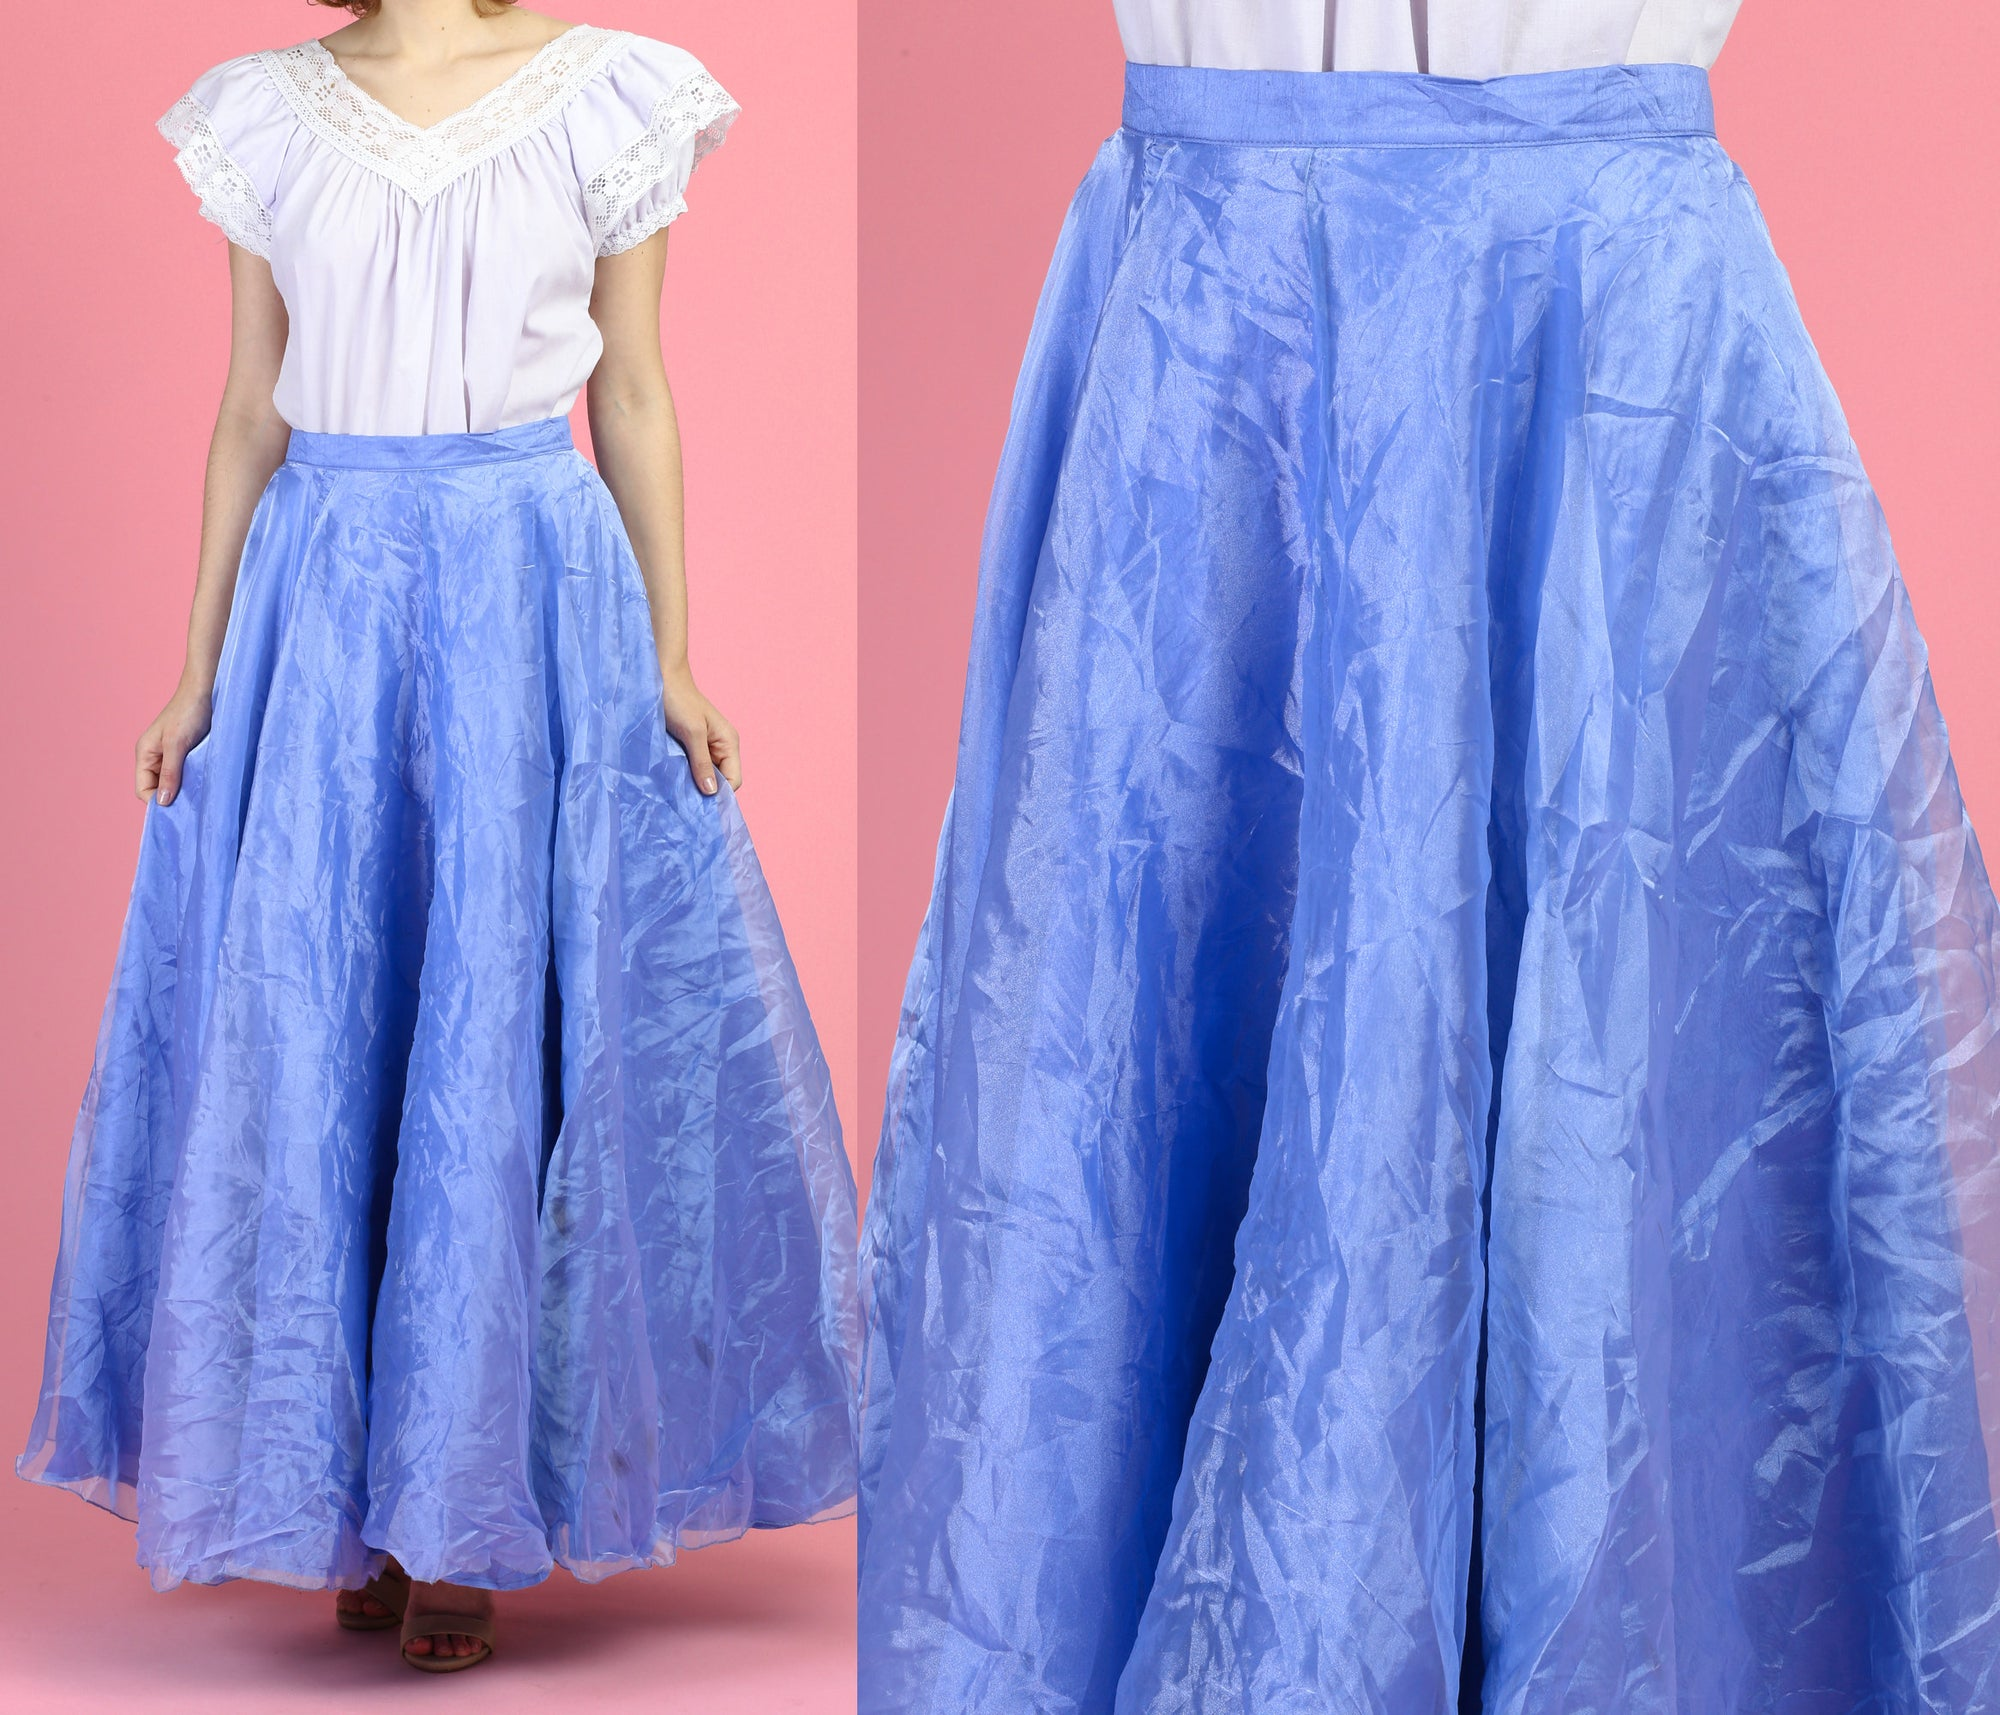 Vintage Pastel Blue Maxi Skirt - Medium